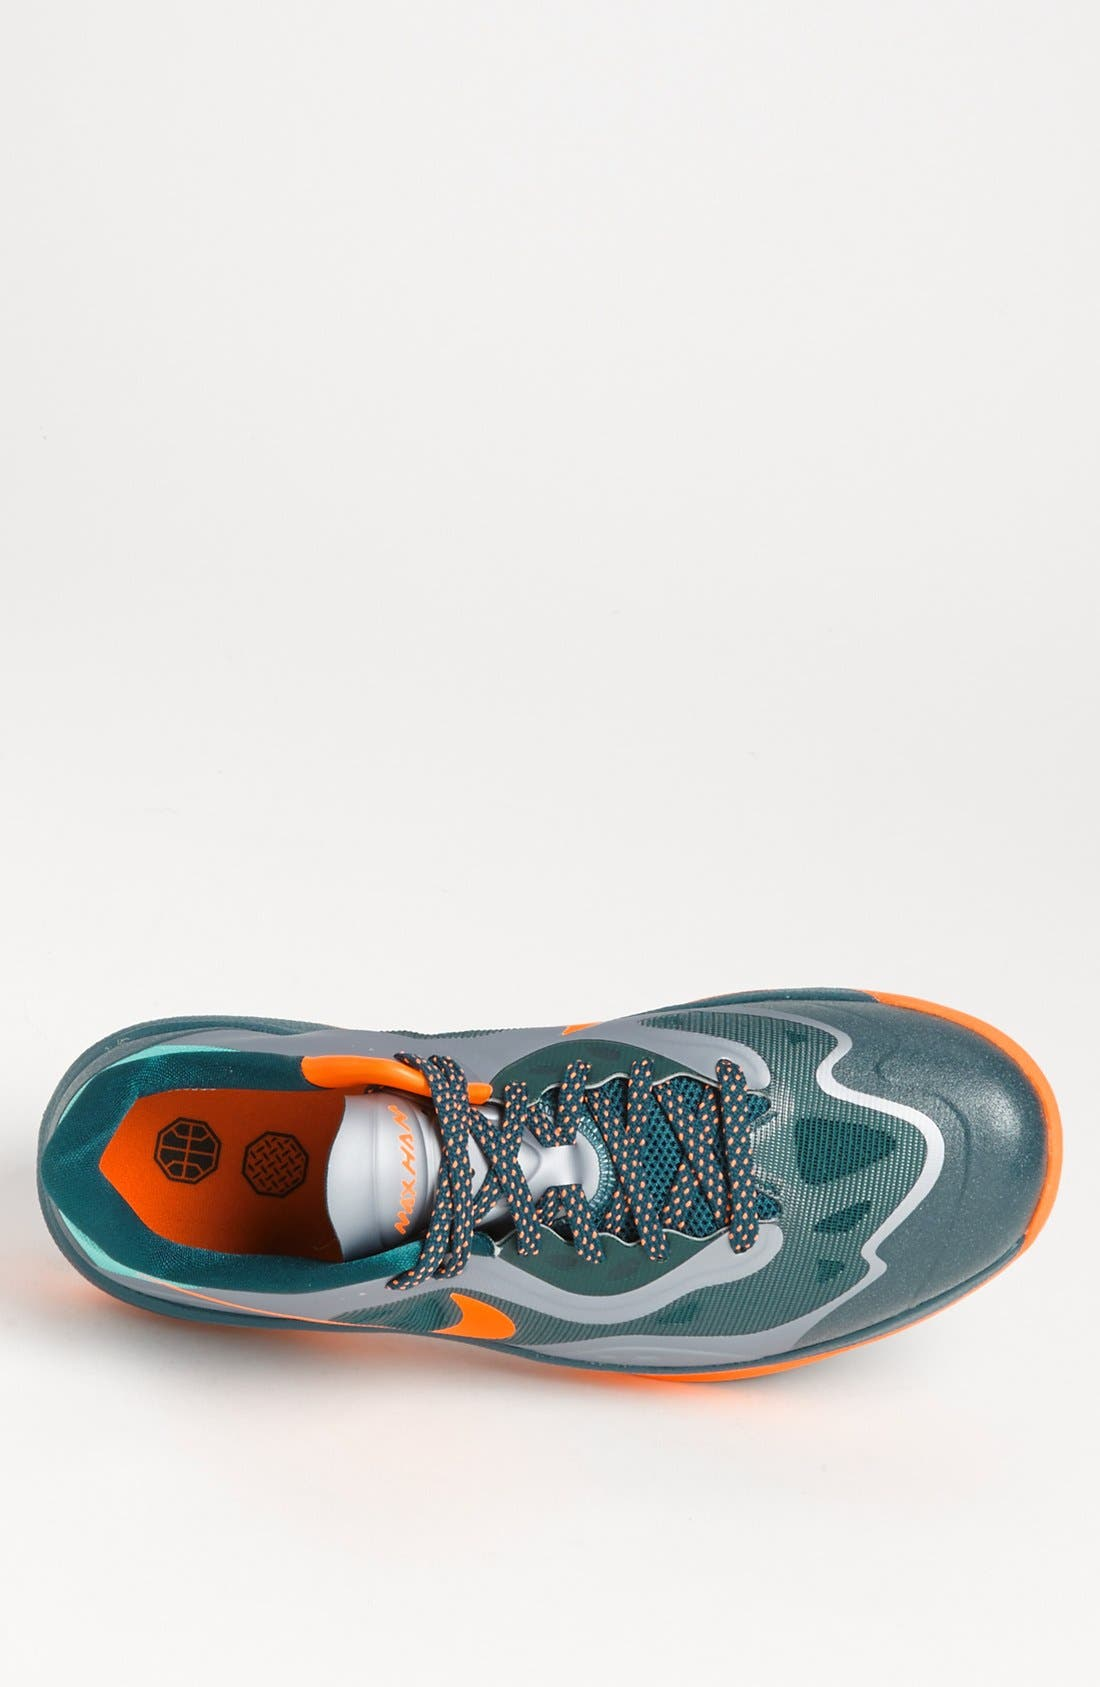 Alternate Image 3  - Nike 'Max H.A.M. Low' Basketball Shoe (Men)